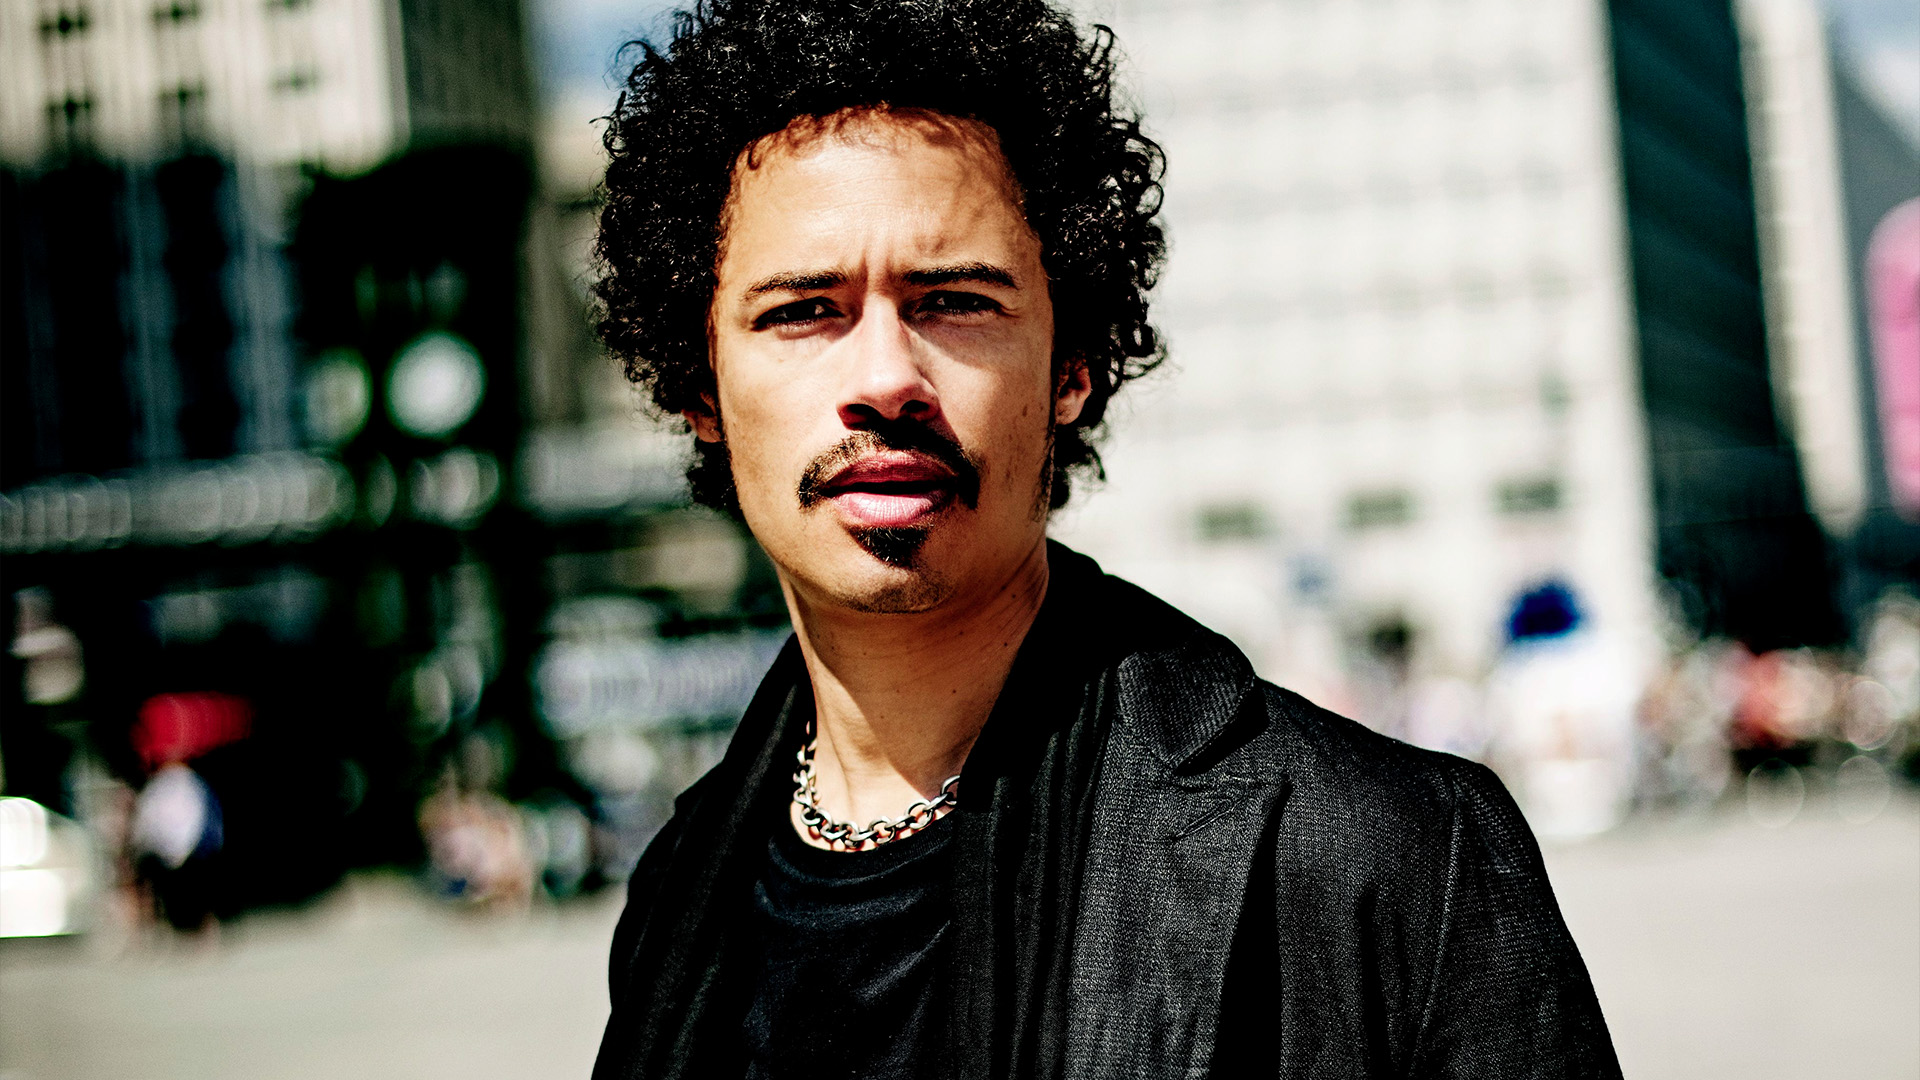 Save Tonight av Eagle Eye Cherry